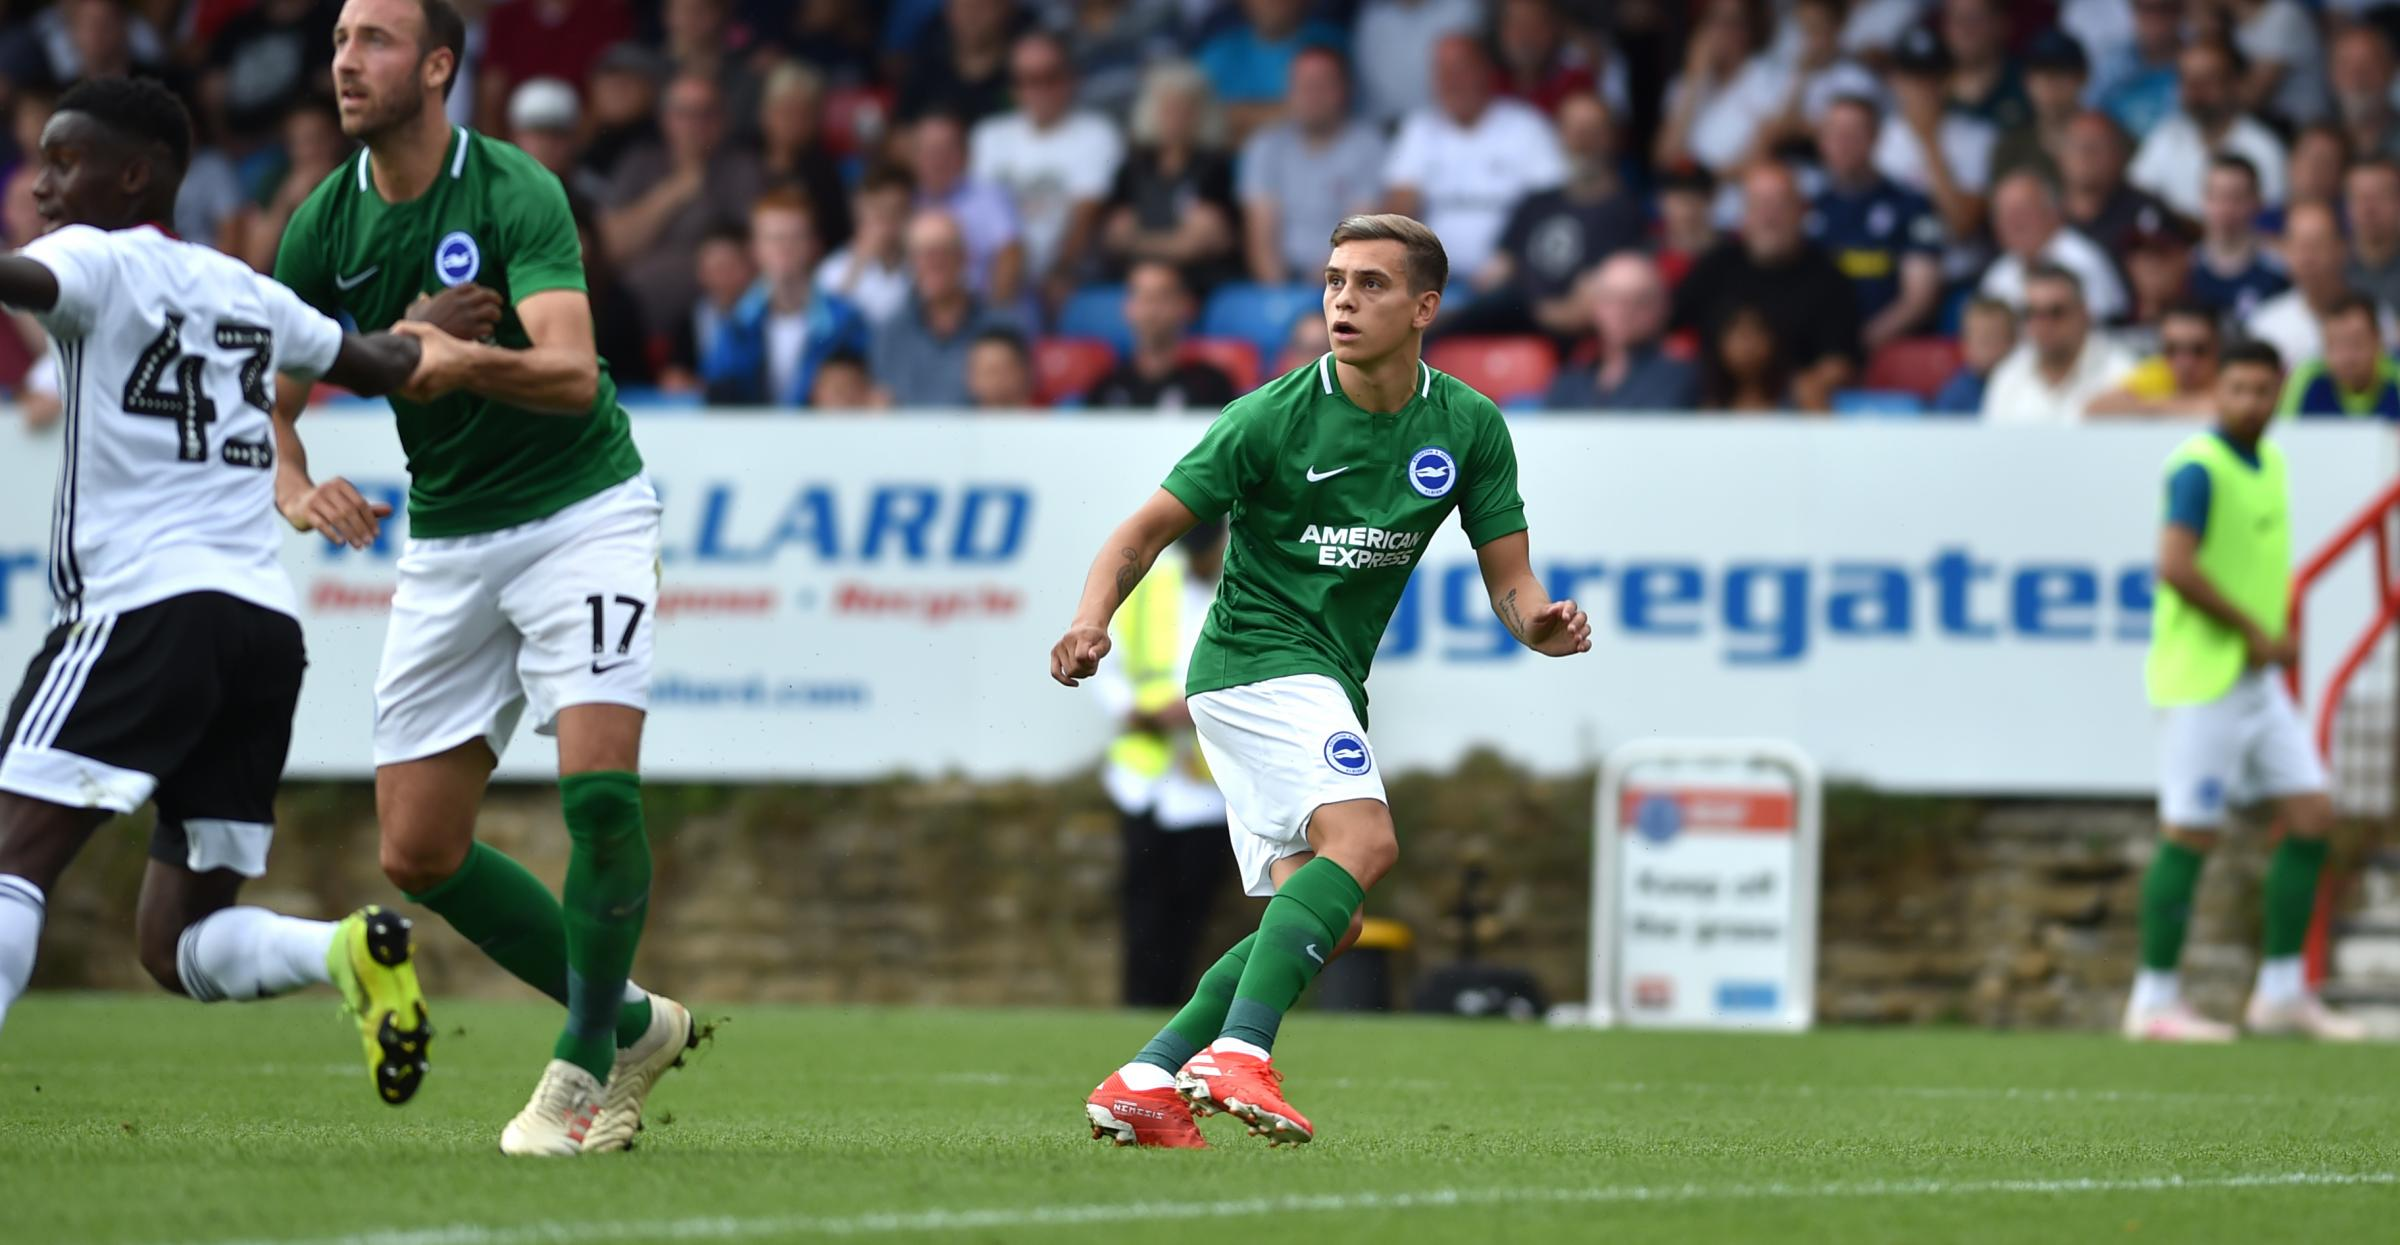 Fulham 2 Brighton and Hove Albion 1: As-it-happened report from pre-season match at Aldershot.